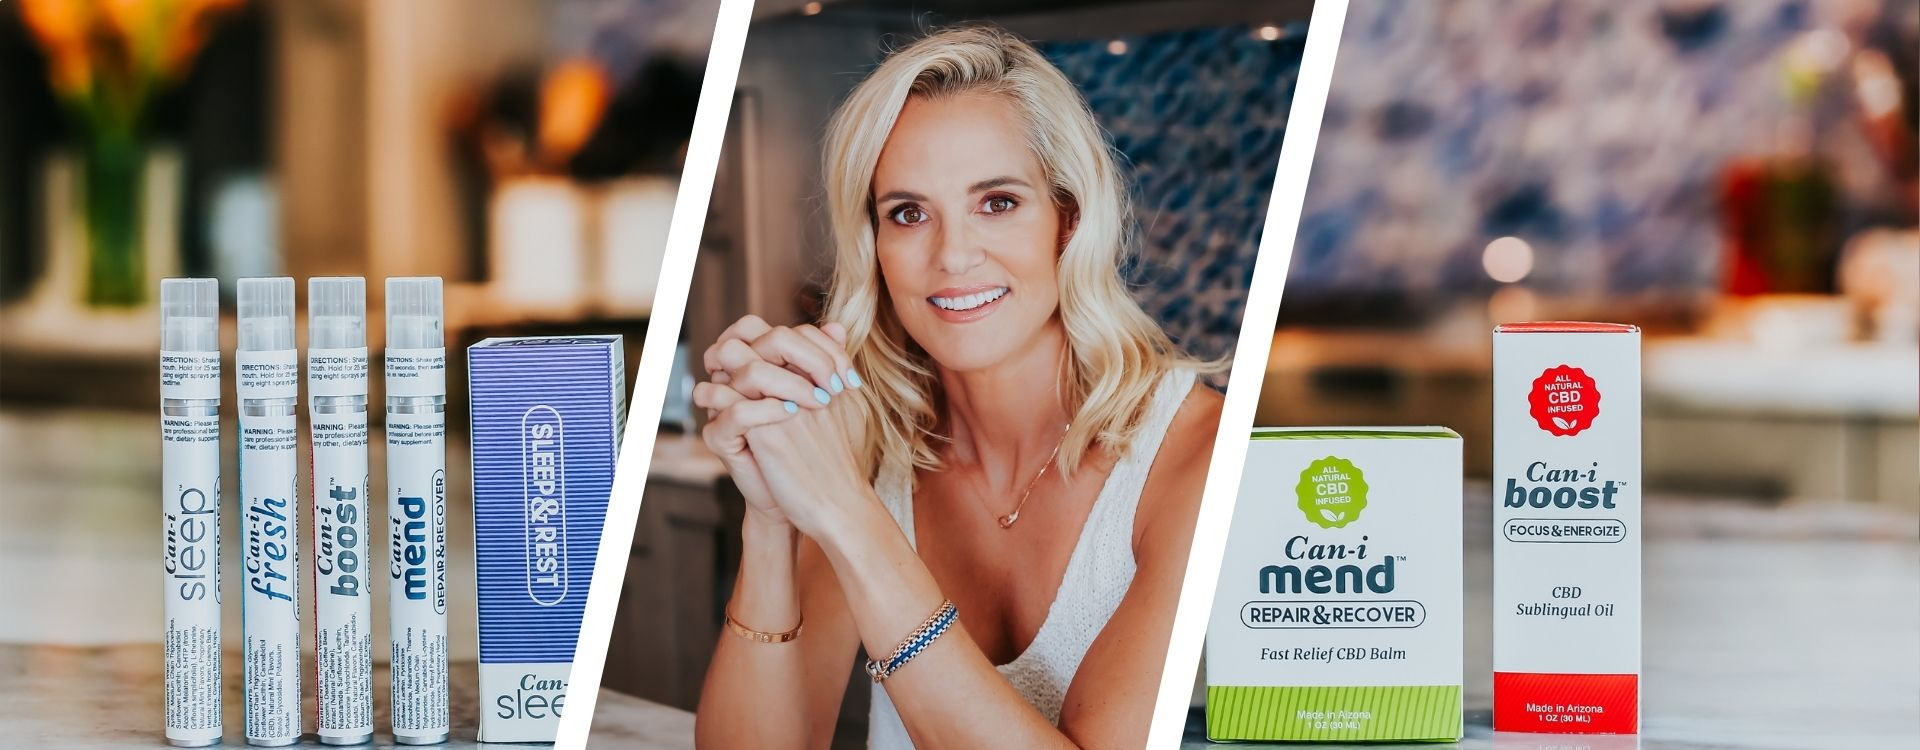 Chief Lifestyle and Wellness Officer Spotlight